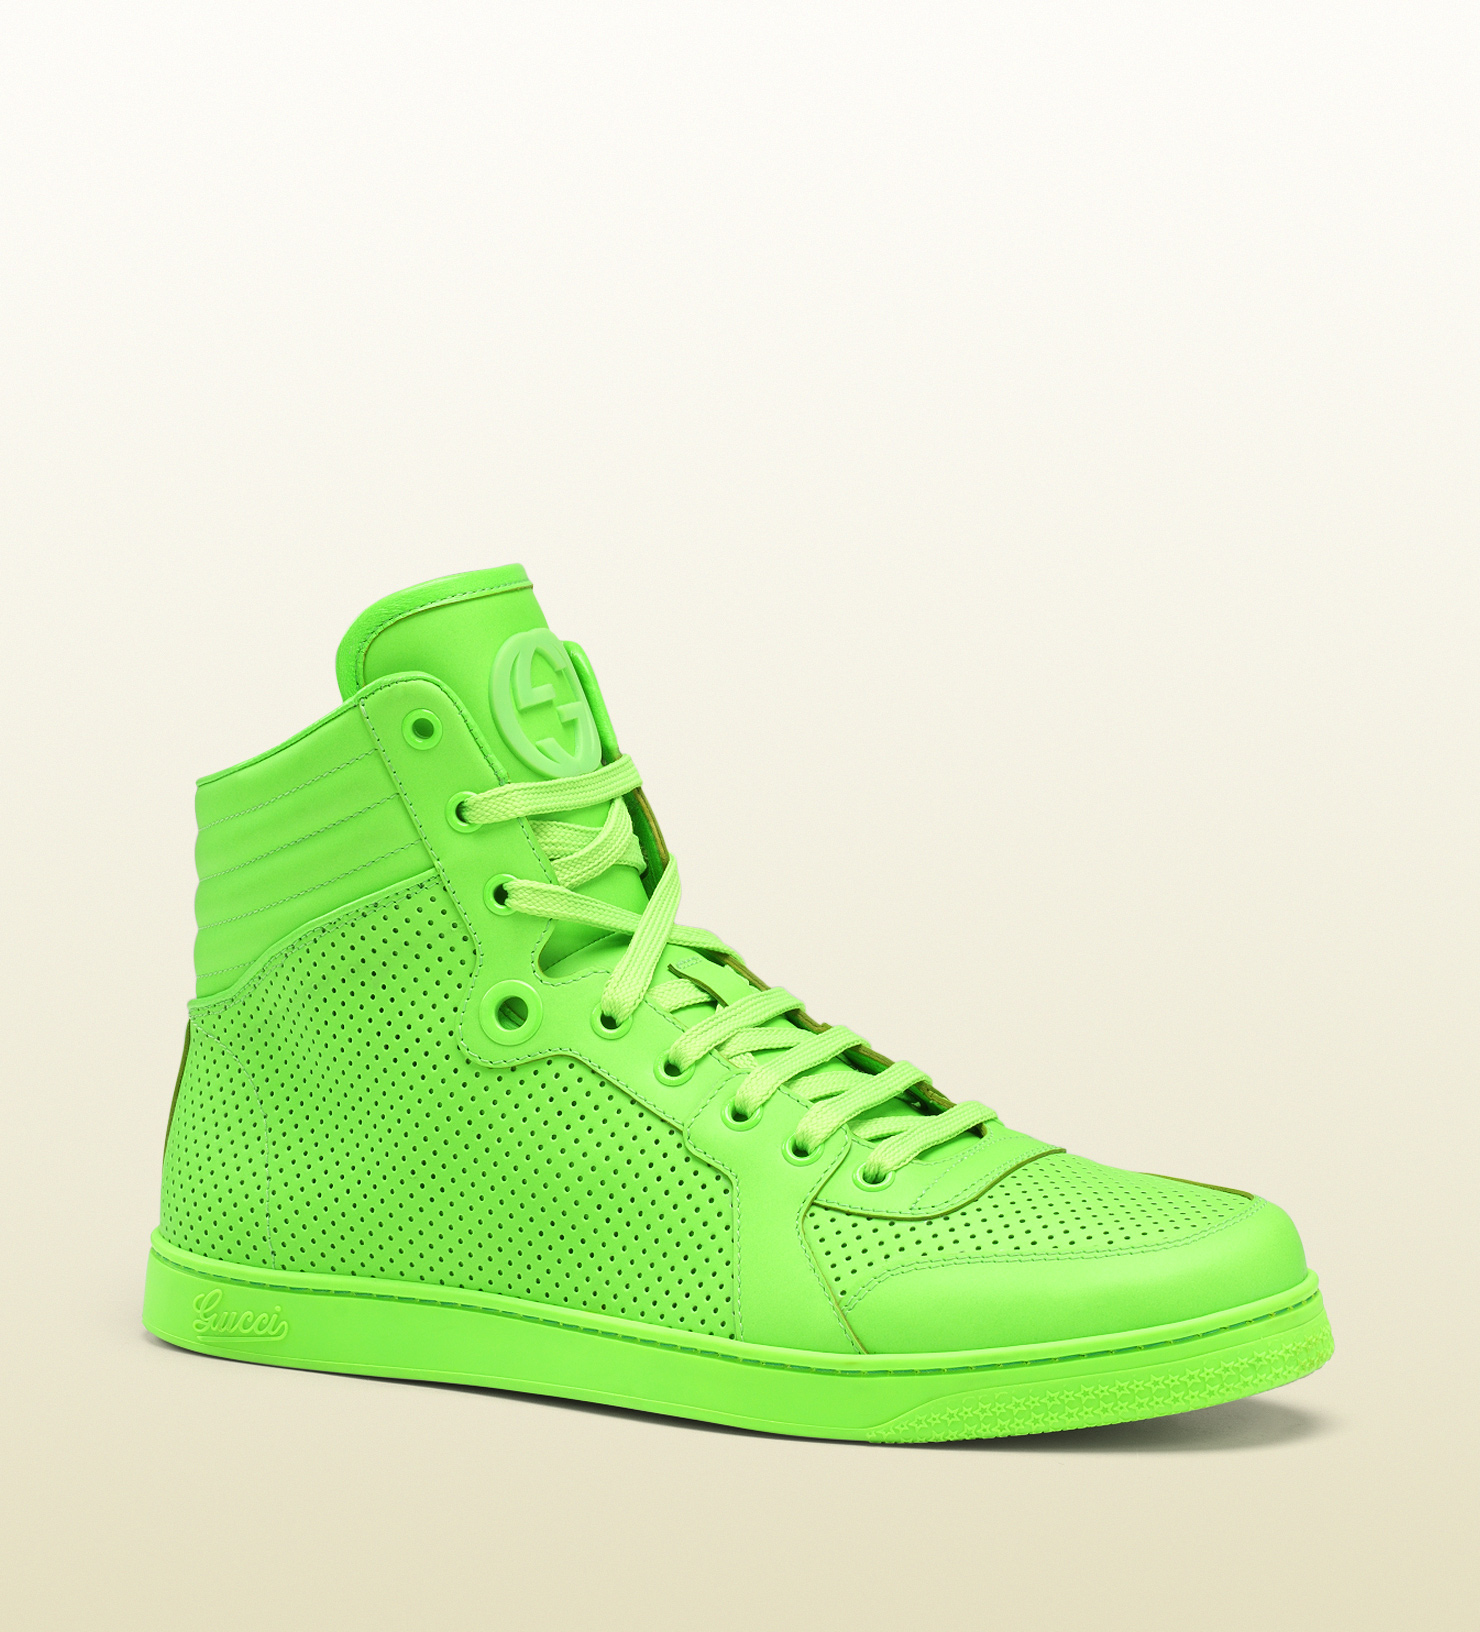 c1ed9dd35bc1 Lyst - Gucci Neon Green Leather Hightop Sneaker in Green for Men